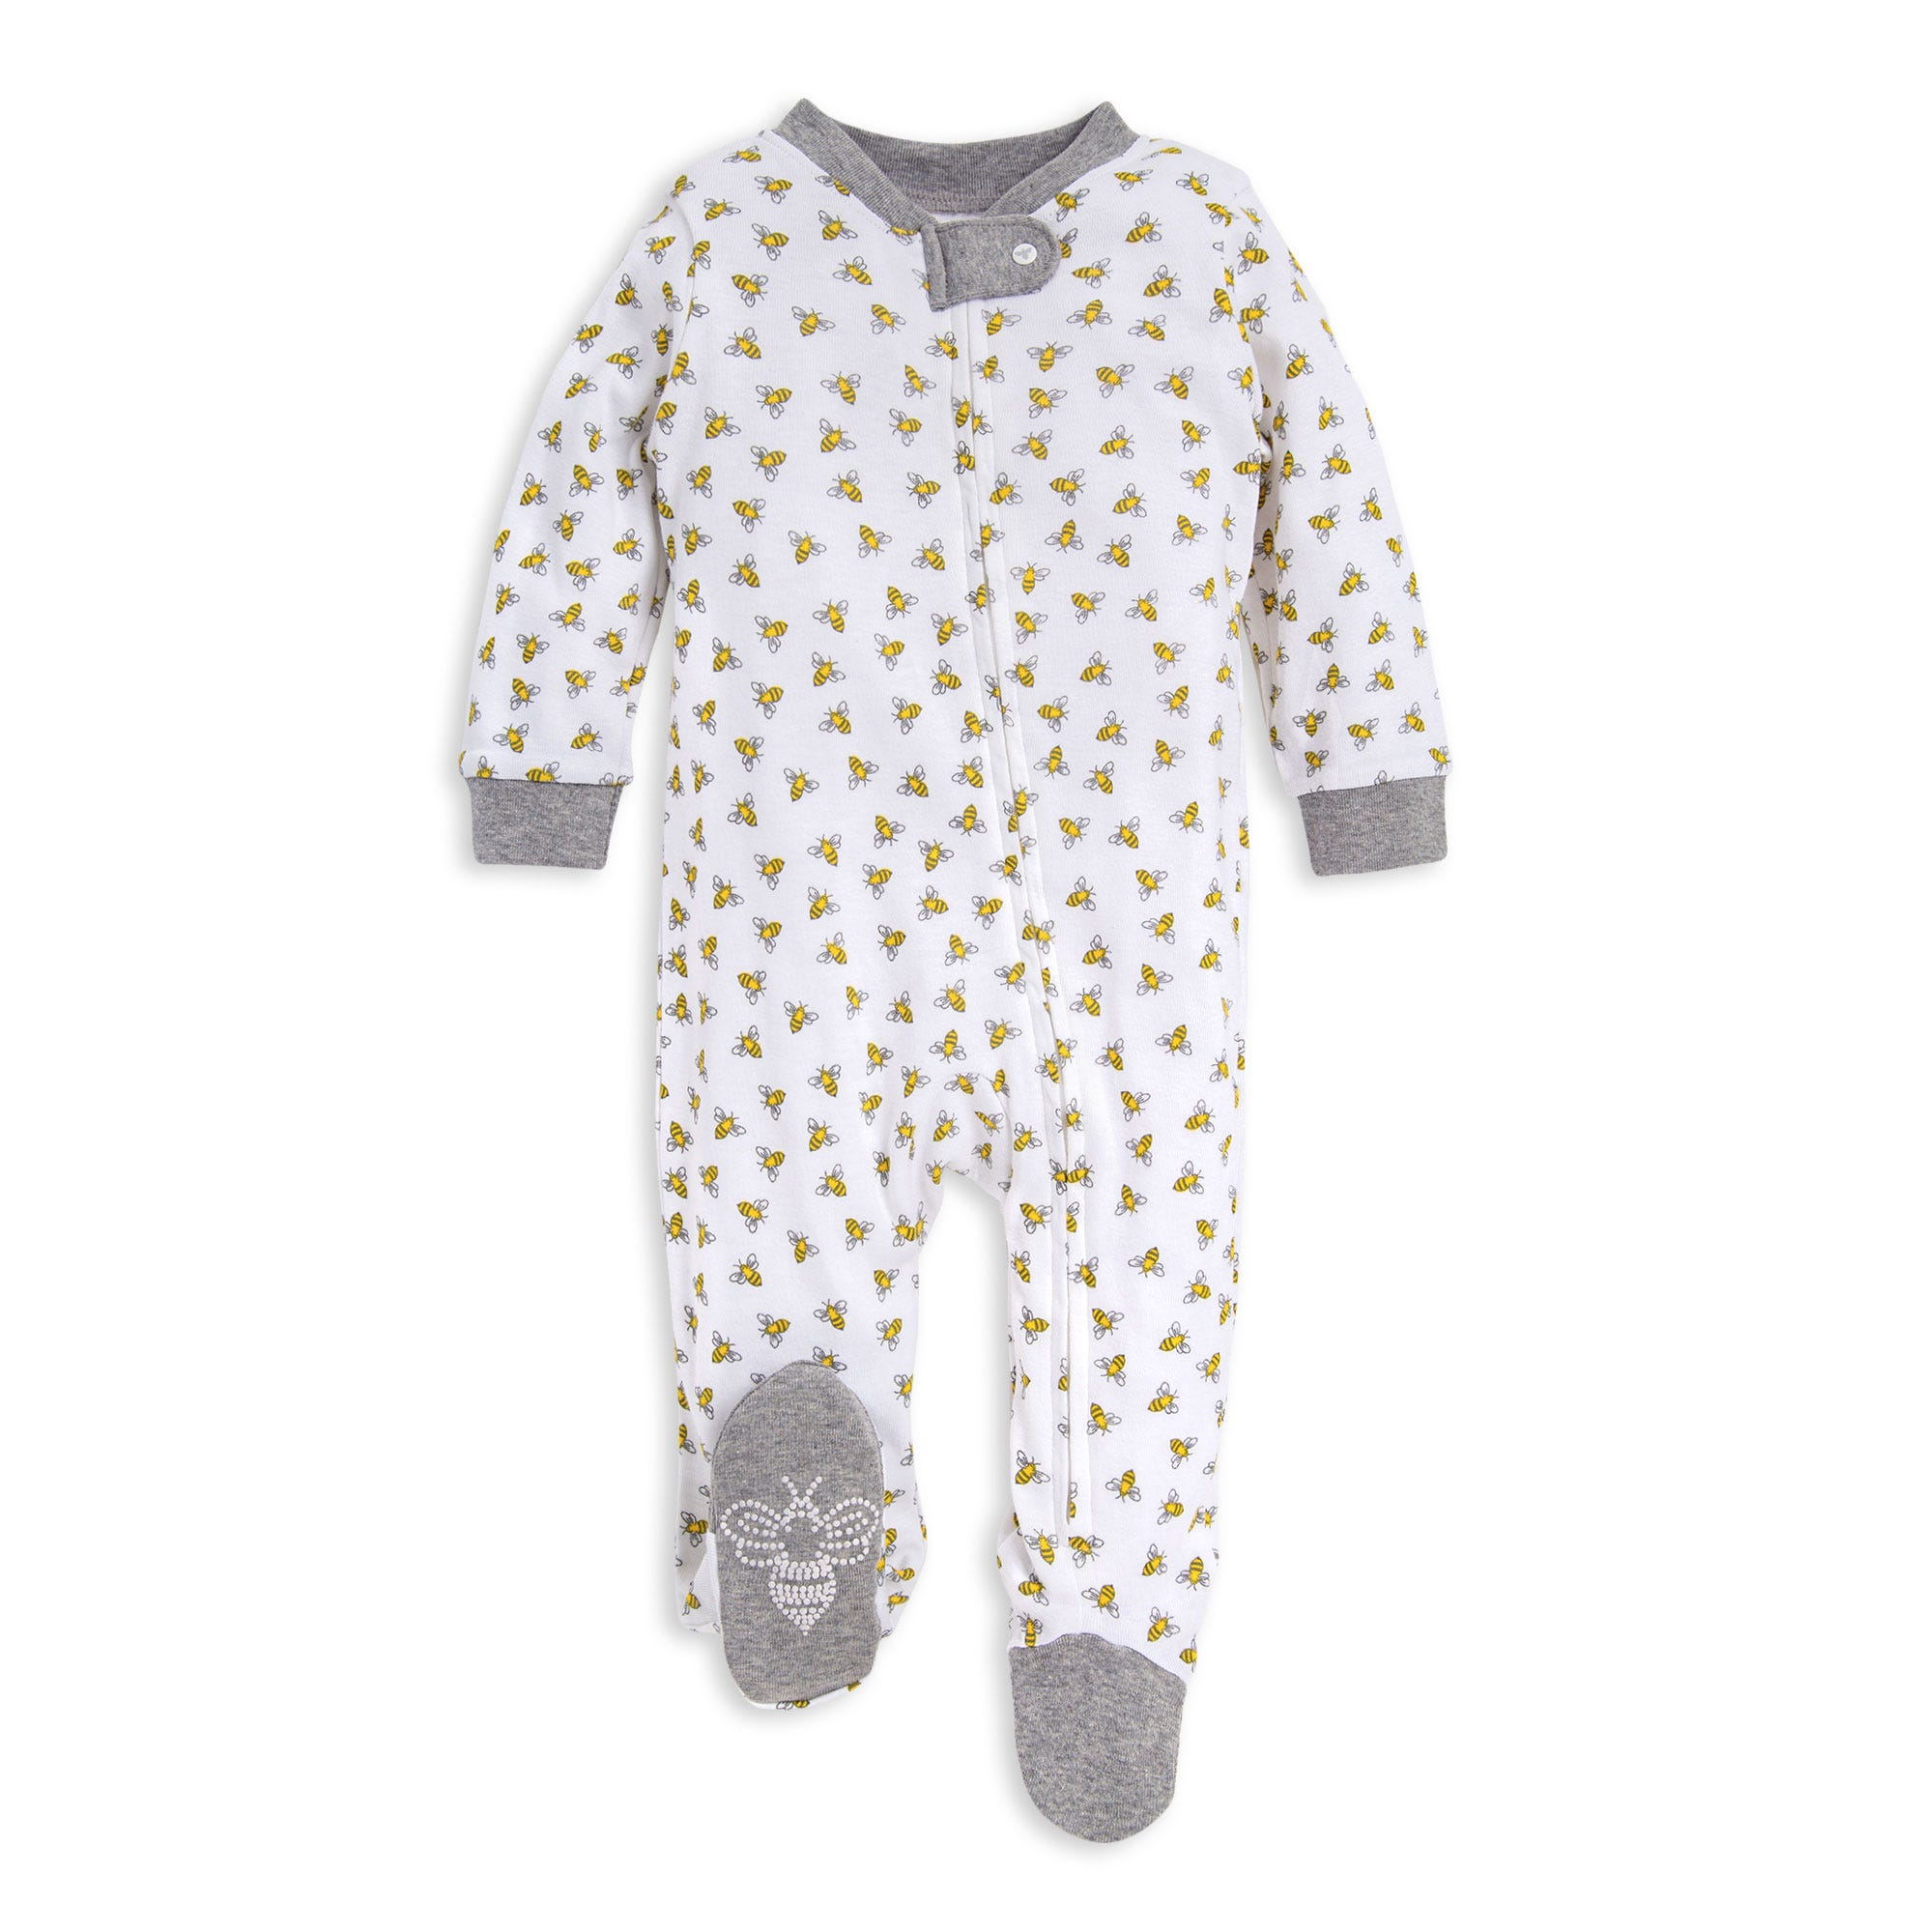 Baby Sleeper Pajamas Zip Footed Boy and Girl Organic Cotton 0,3,6,9,12 Month